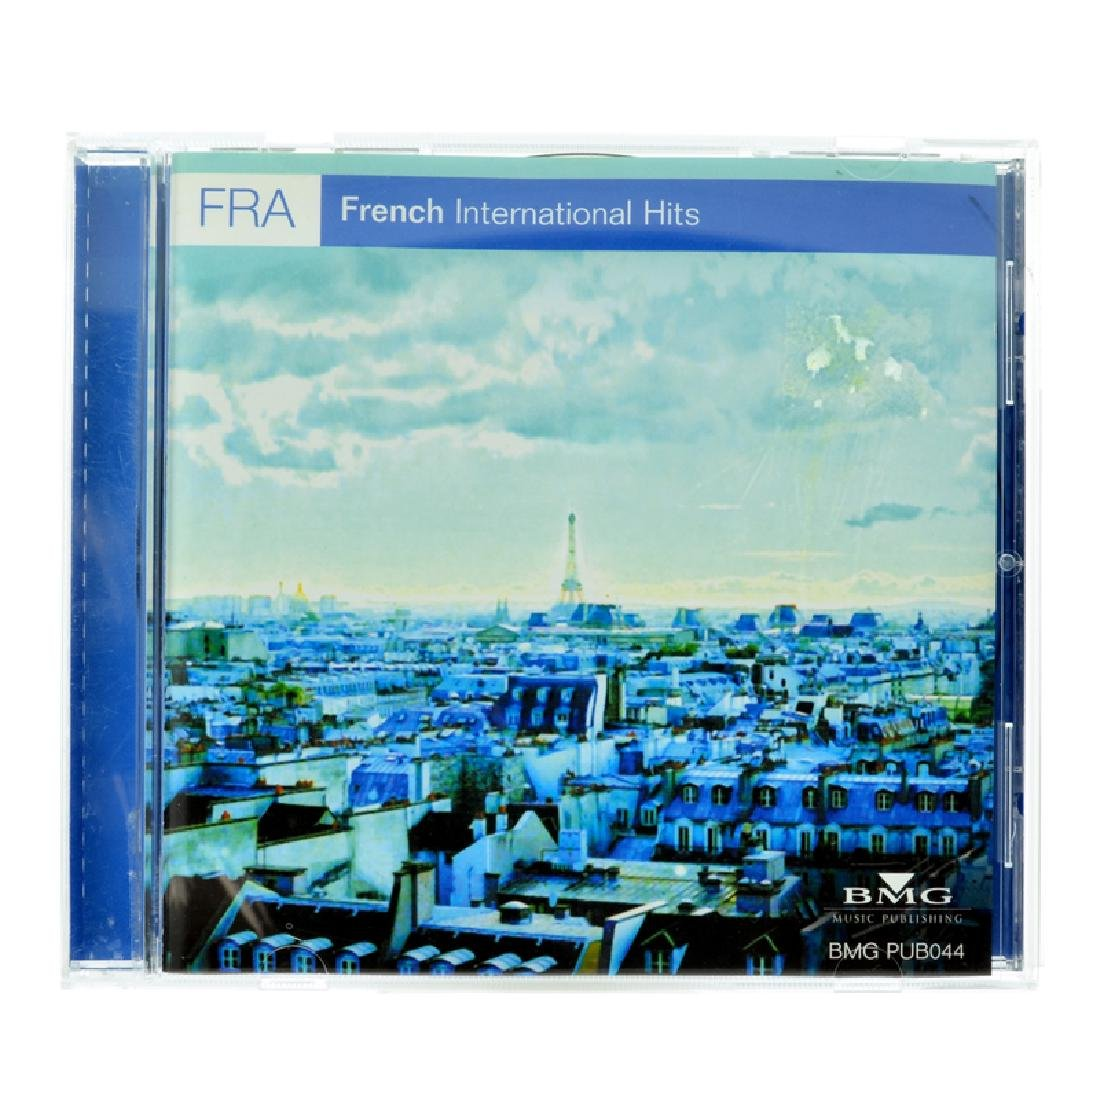 FRA French International Hits CDs